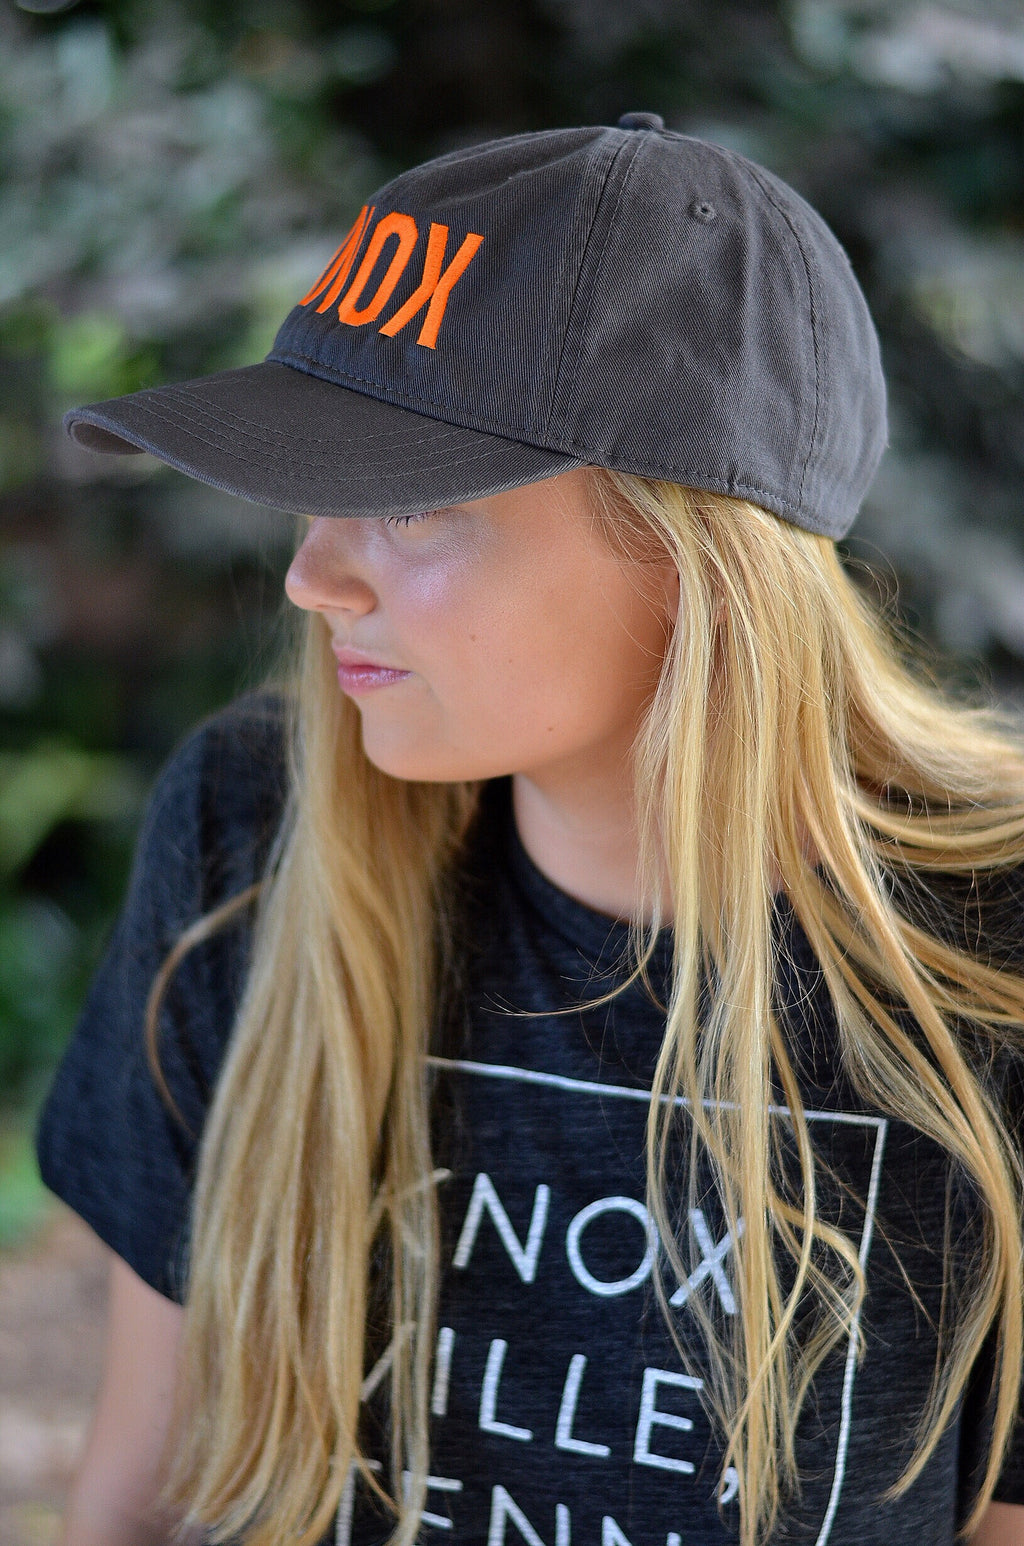 KNOX Hat, Gray with Orange Letters